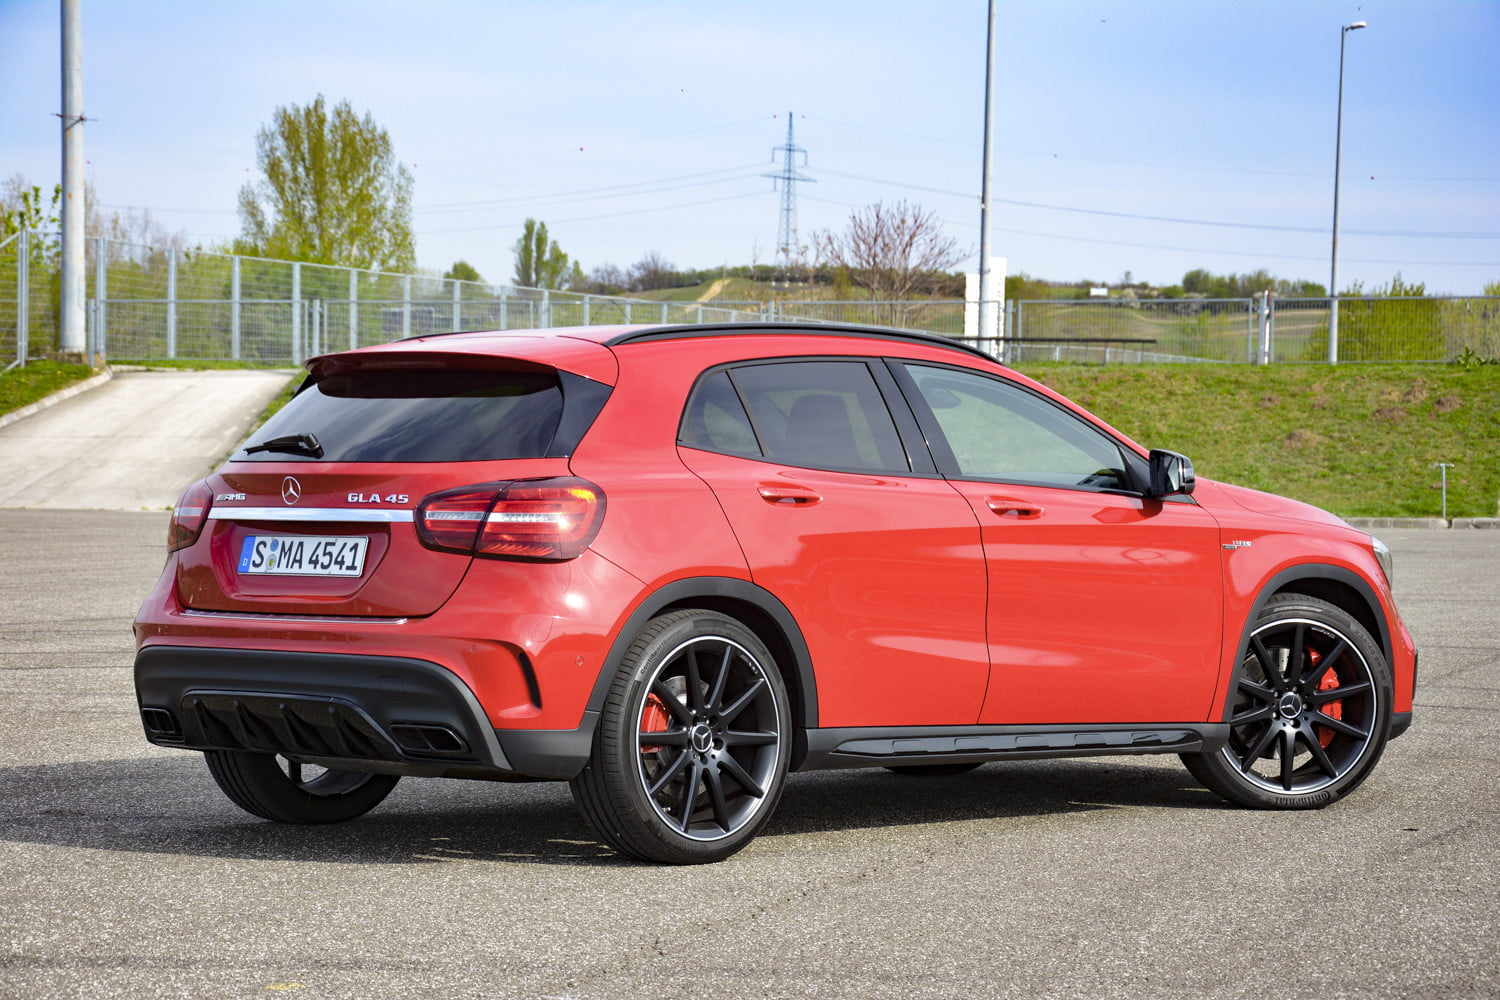 2018 mercedes amg gla45 first drive impressions specs 518